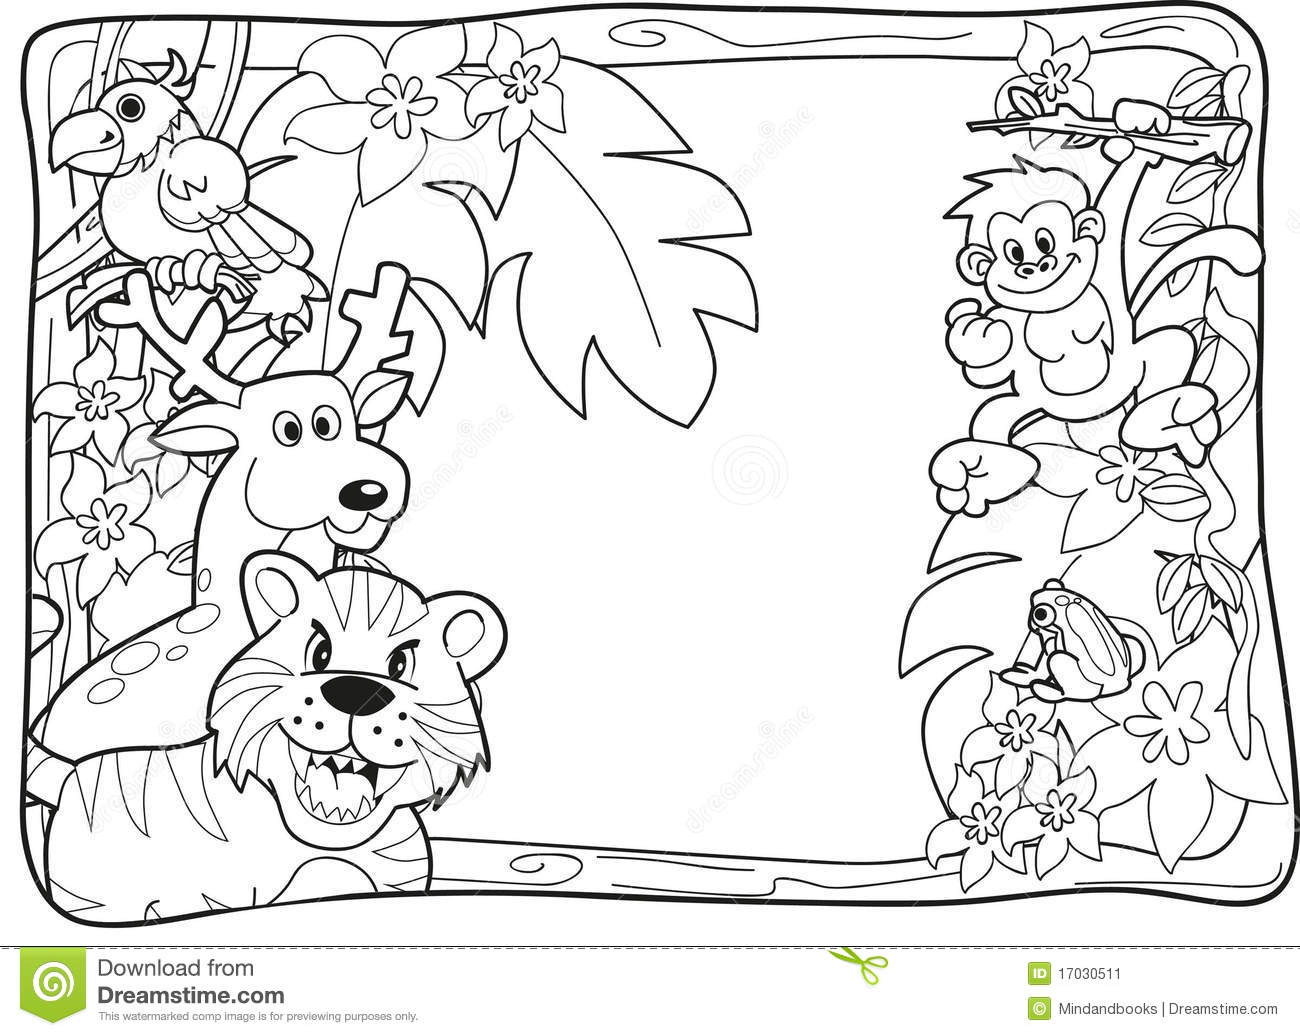 Jungle animal coloring pages to